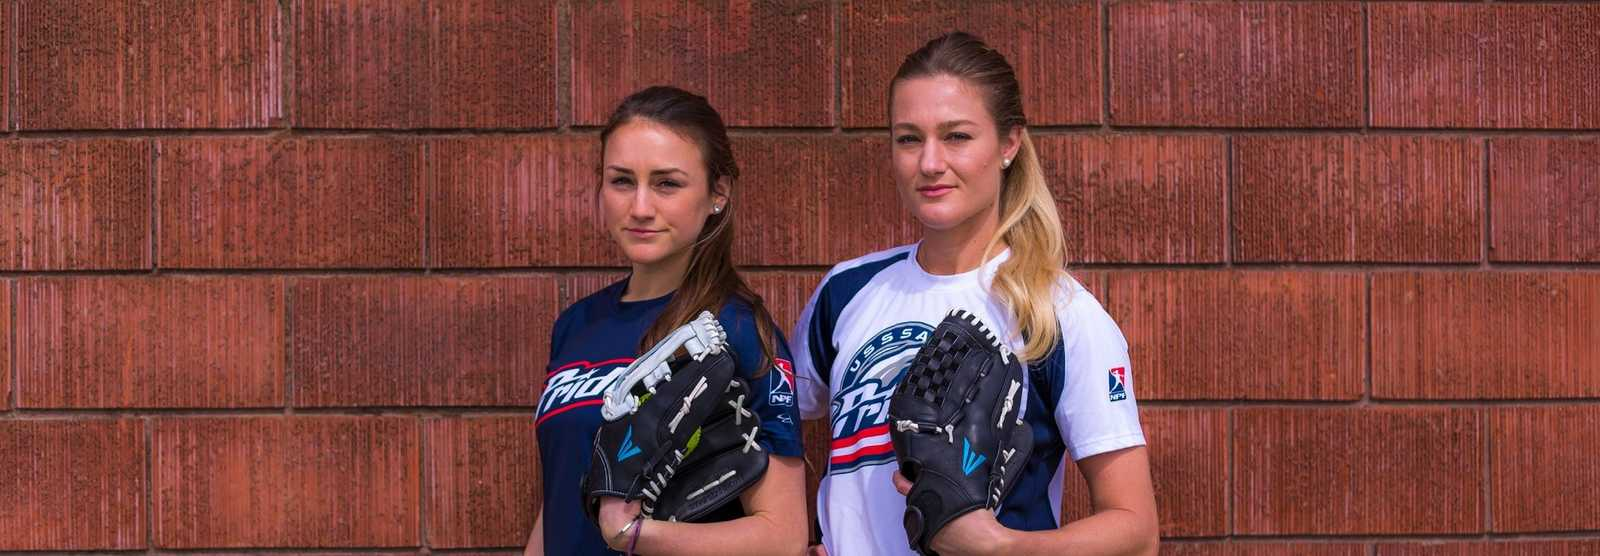 Steal Pro Fastpitch Ball Gloves